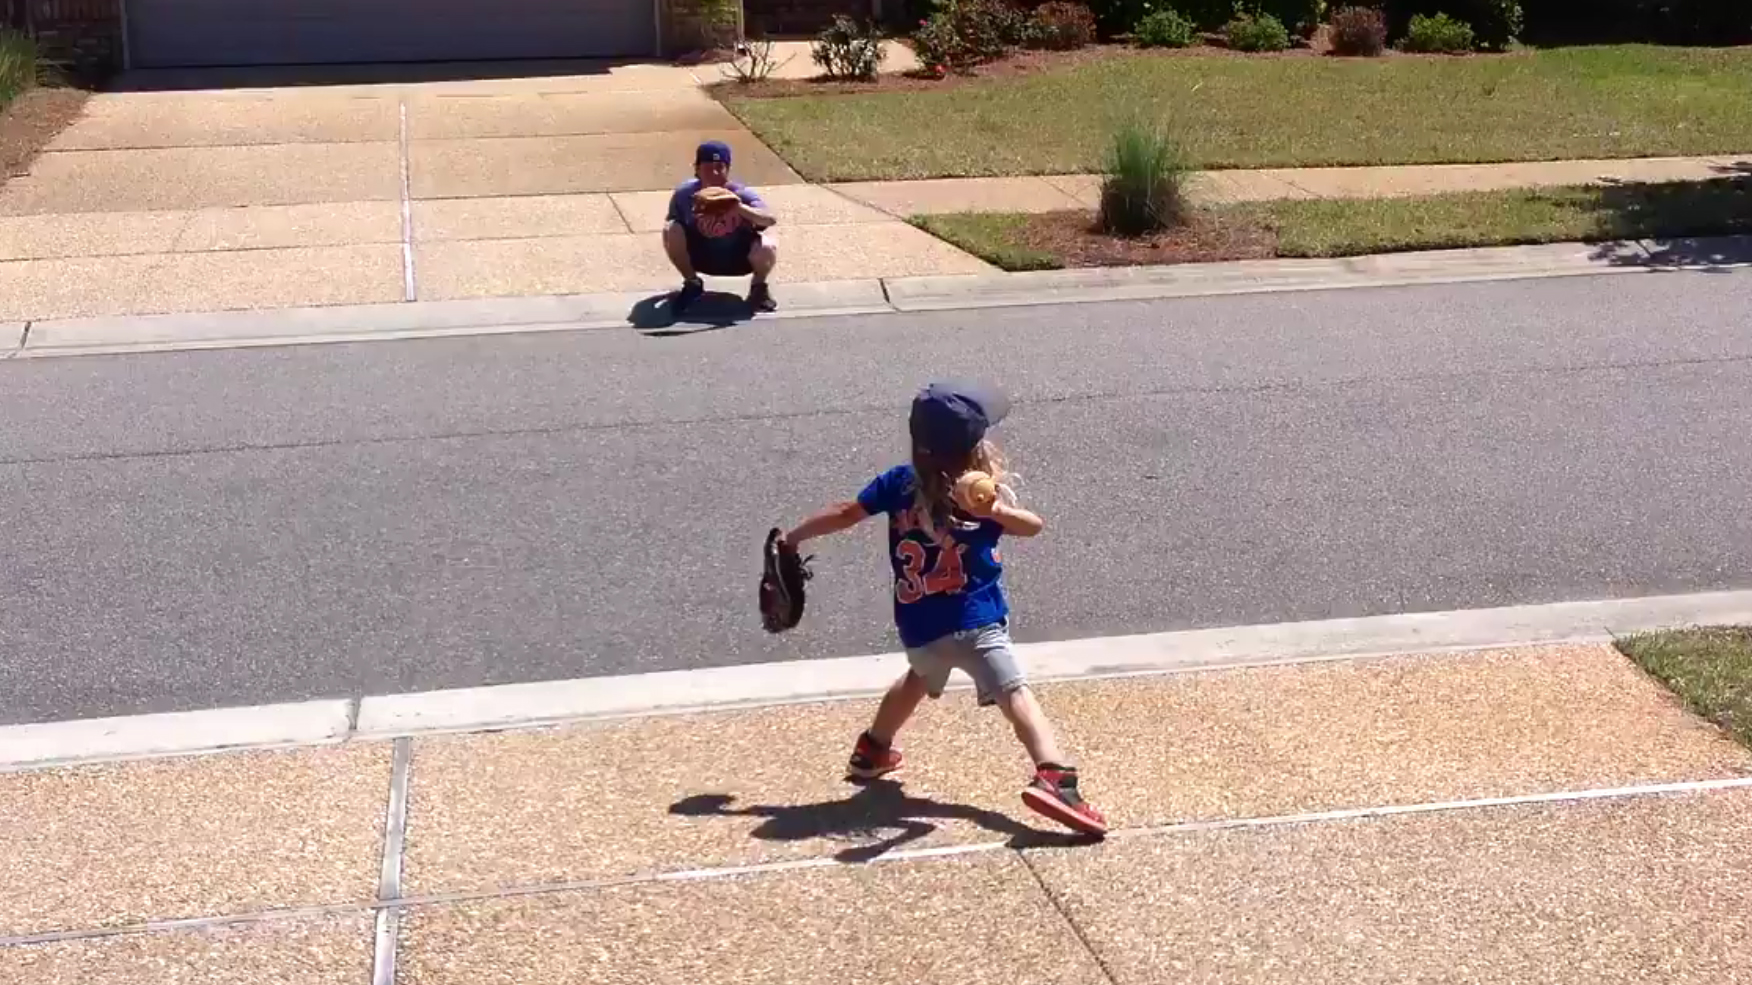 5-year old Ashtin just showed everyone that not only does he look like Noah Syndergaard, but he can pitch like him too.